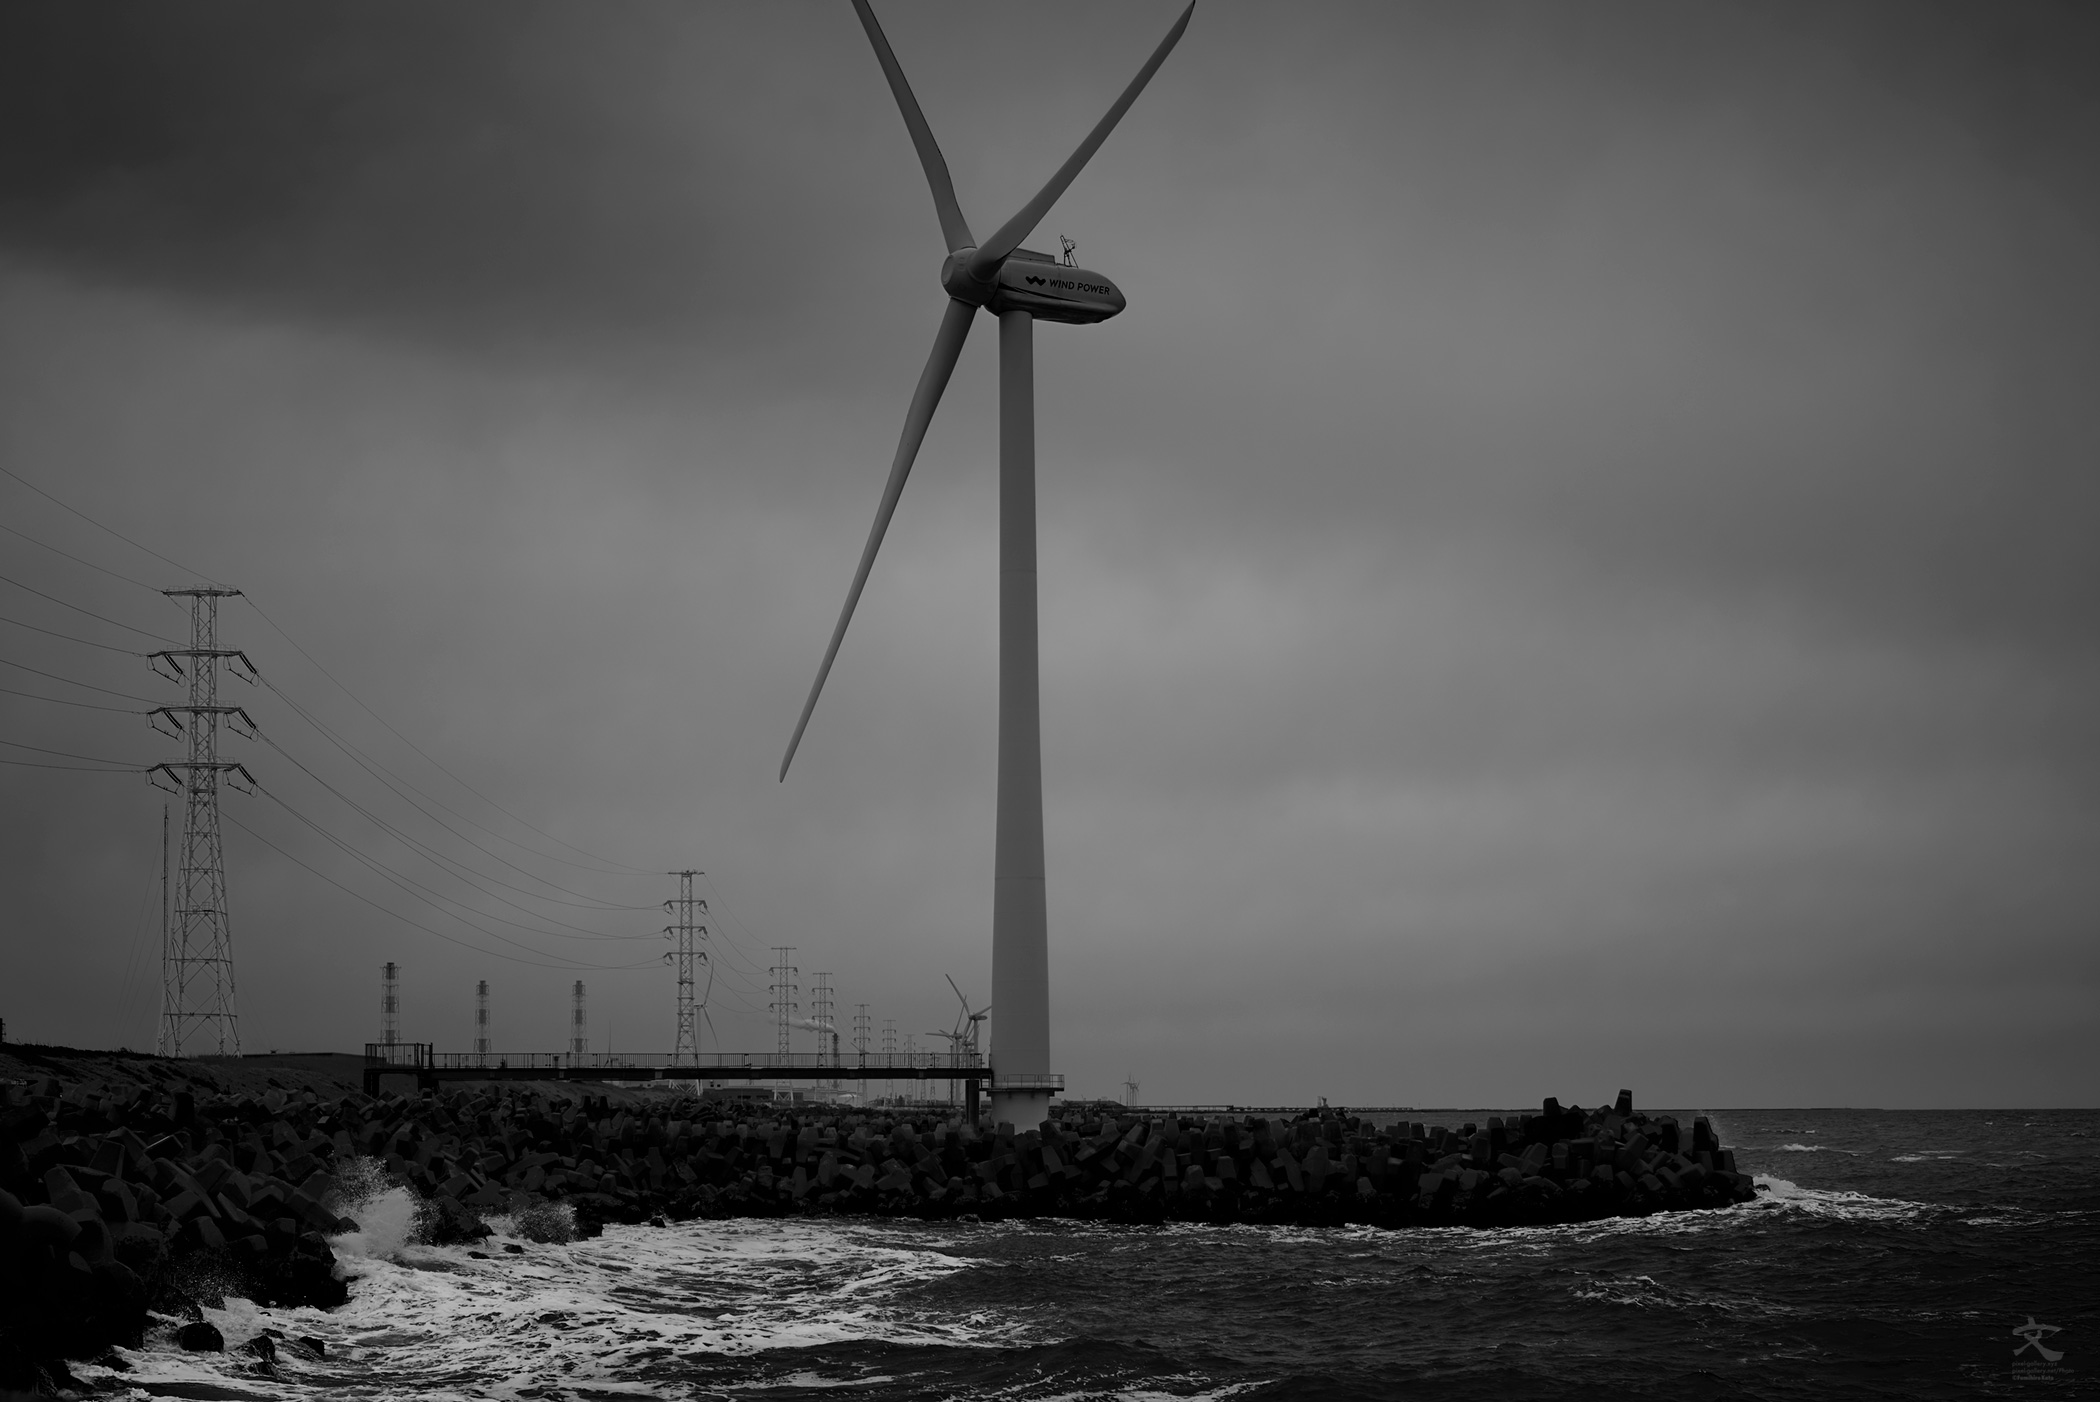 海景 Wind power Part 5. 20170331_3970 Kashimanada